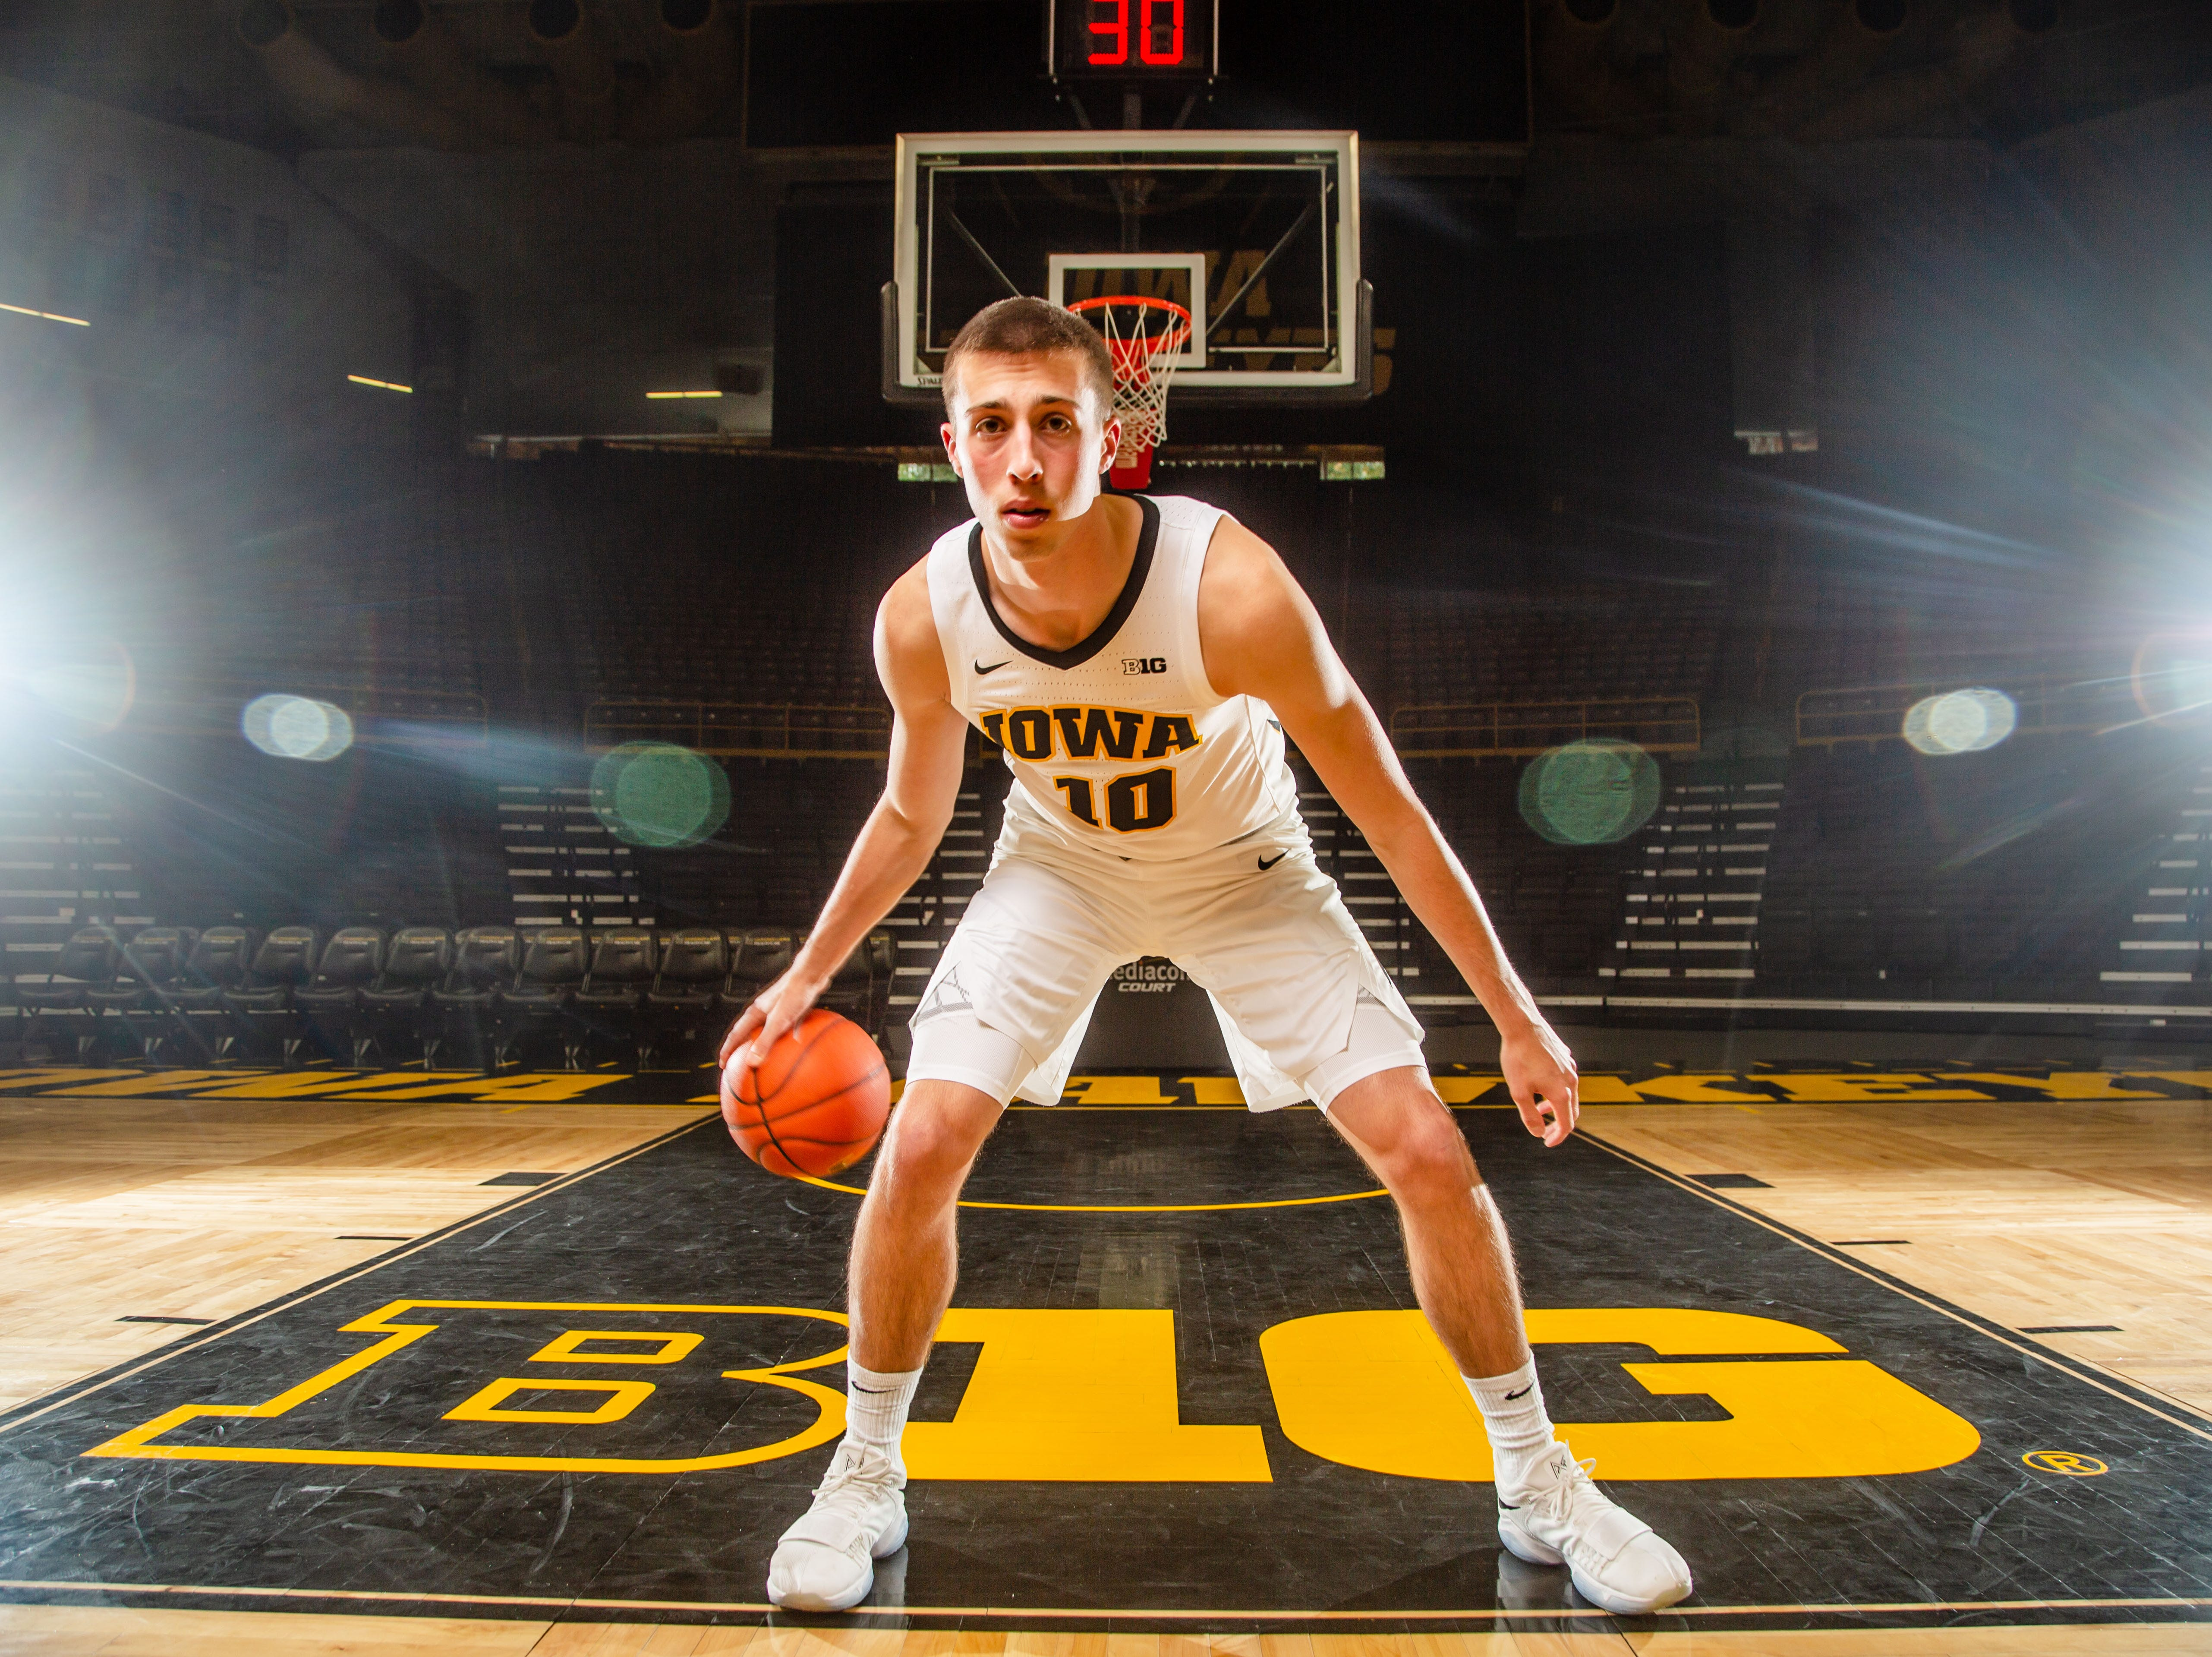 Iowa guard Joe Wieskamp poses for a photo during Hawkeye media day at Carver Hawkeye ArenaMonday, Oct. 8, 2018.